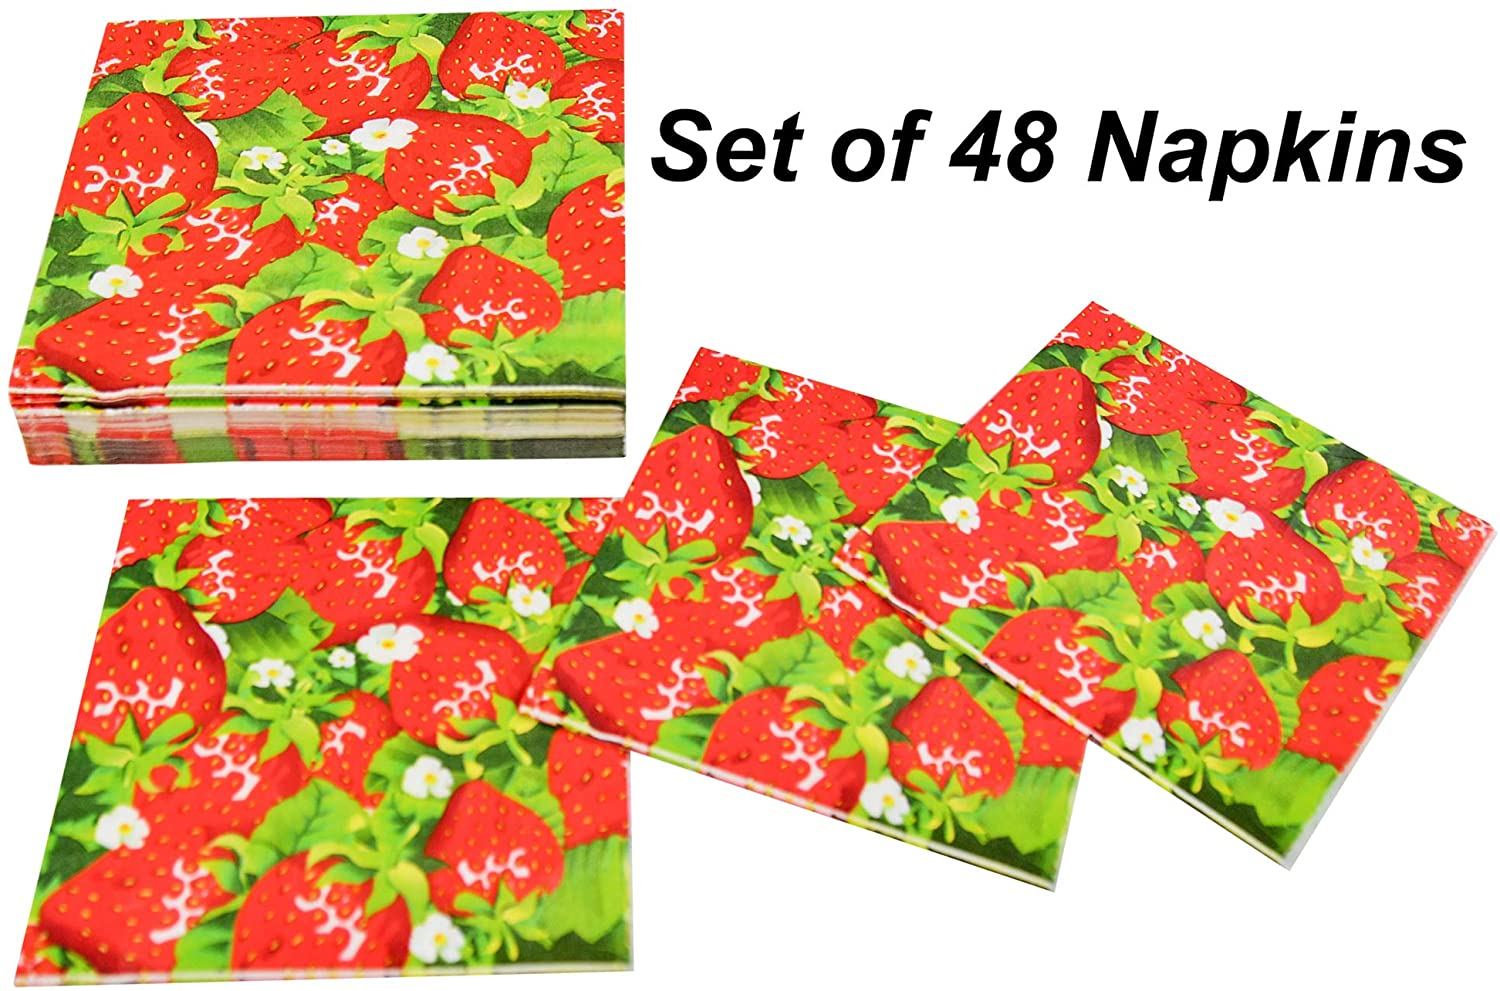 HOME-X Strawberry Garden Paper Napkins, Square Disposable Party Napkins, 48 Count – 6.5 x 6.5